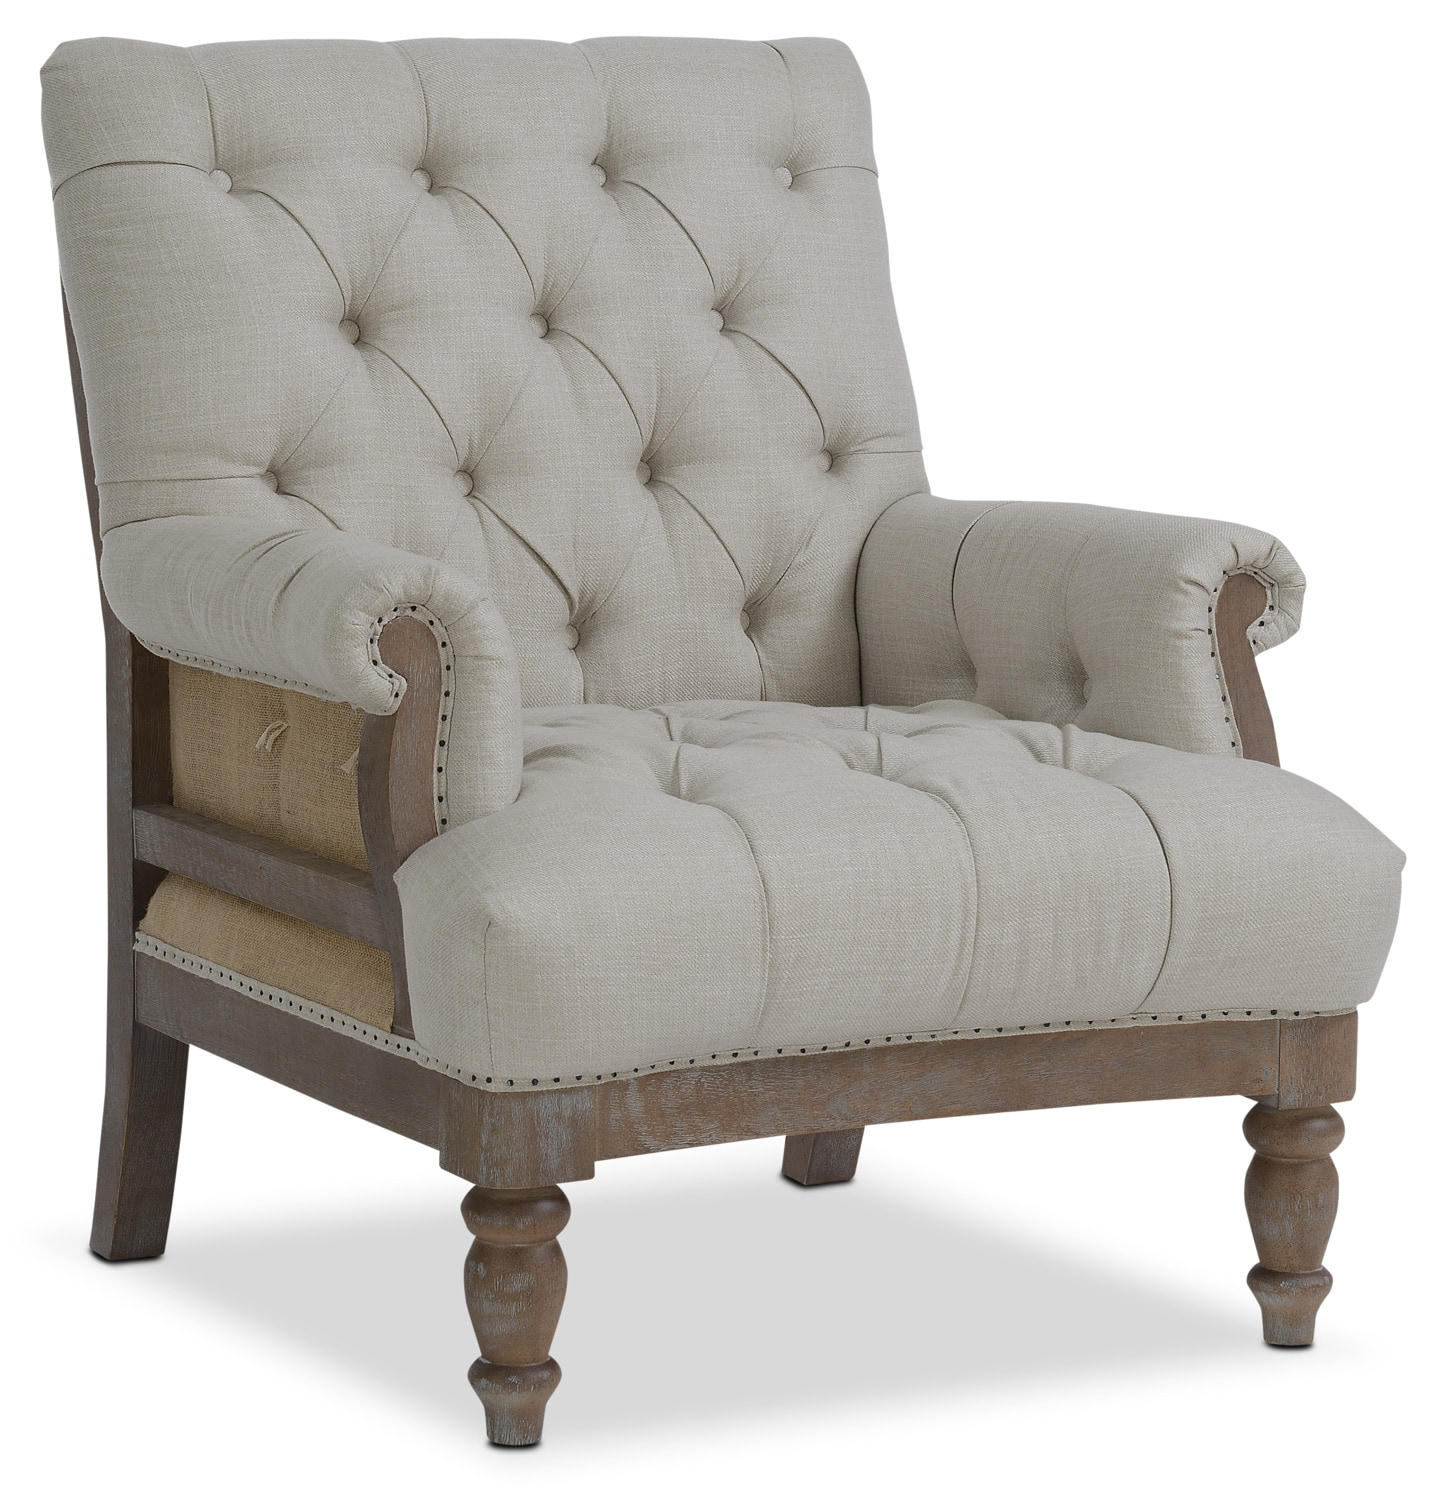 Cream Accent Chair Bridget Accent Chair Cream Value City Furniture And